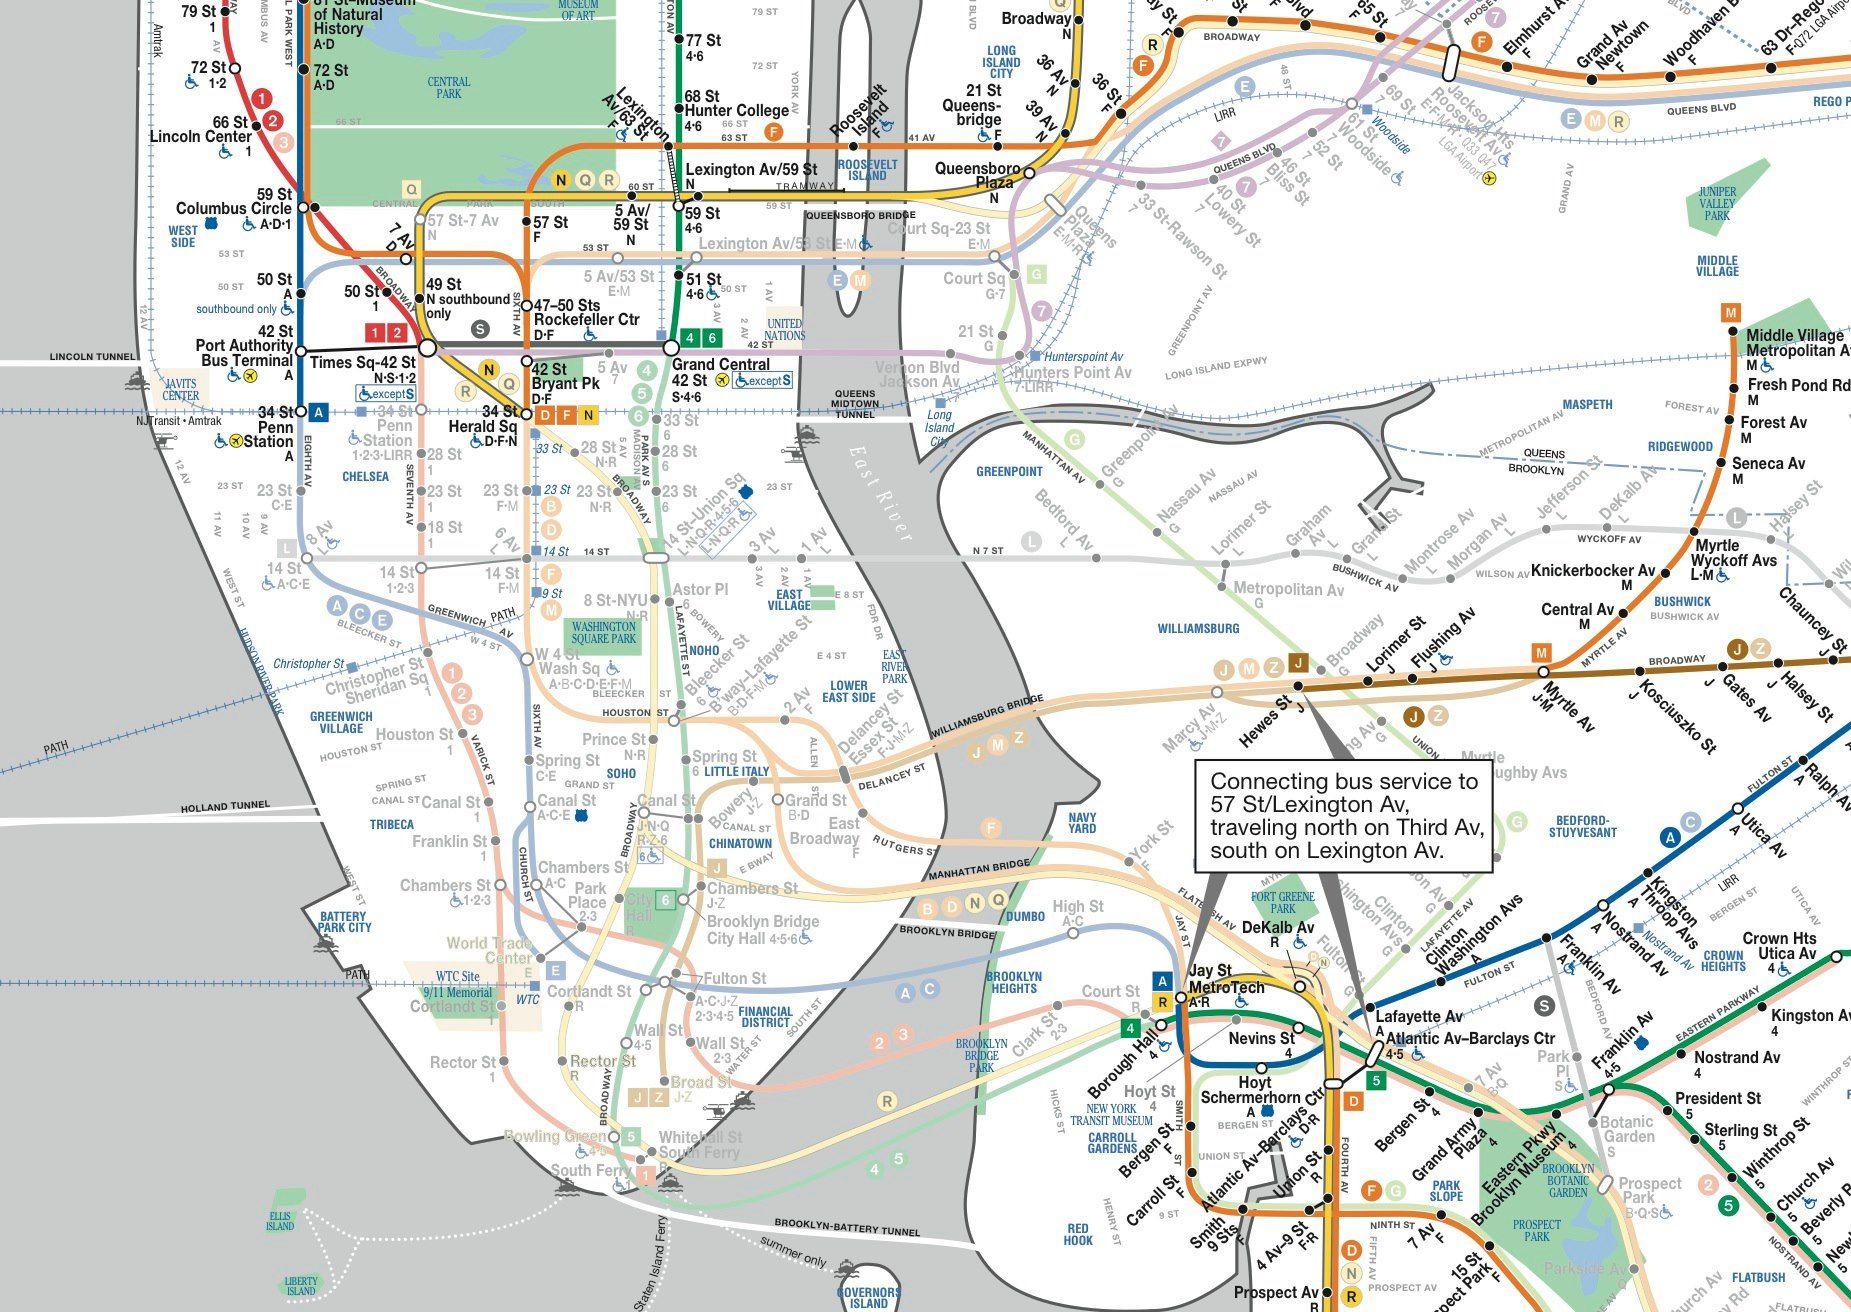 Nyc Subway Map Sandy.Nyc Subway Map Showing Lines Shut Down By Superstorm Sandy Design